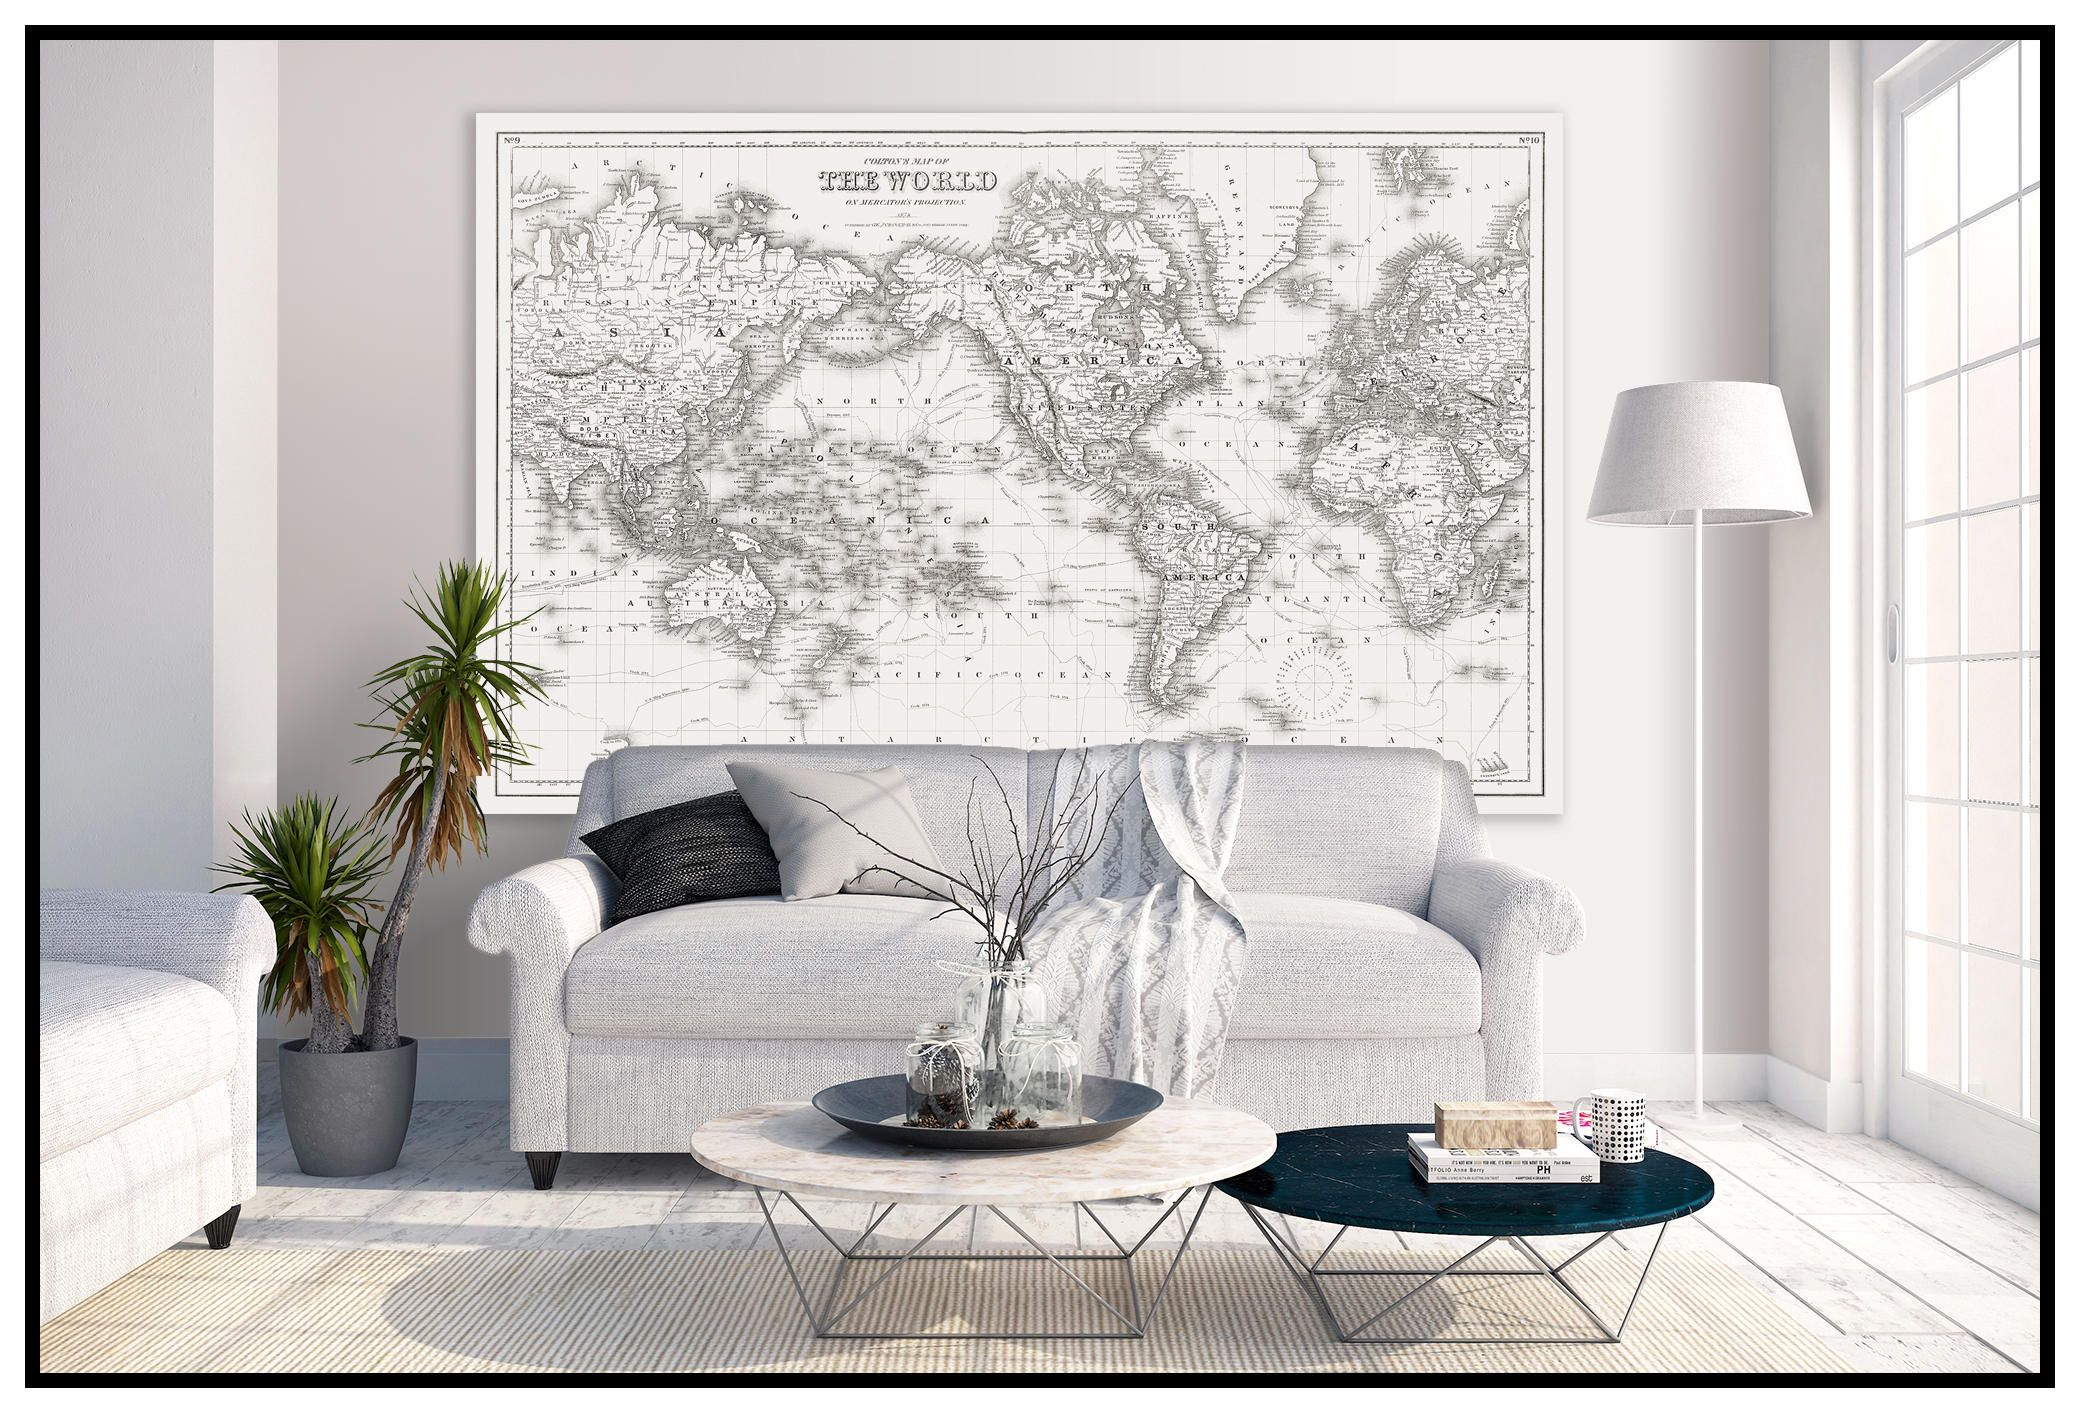 Large vintage world map world map in antique whites world map large vintage world map world map in antique whites world map grand canvas wall tapestry6xft x 10ft map gumiabroncs Image collections